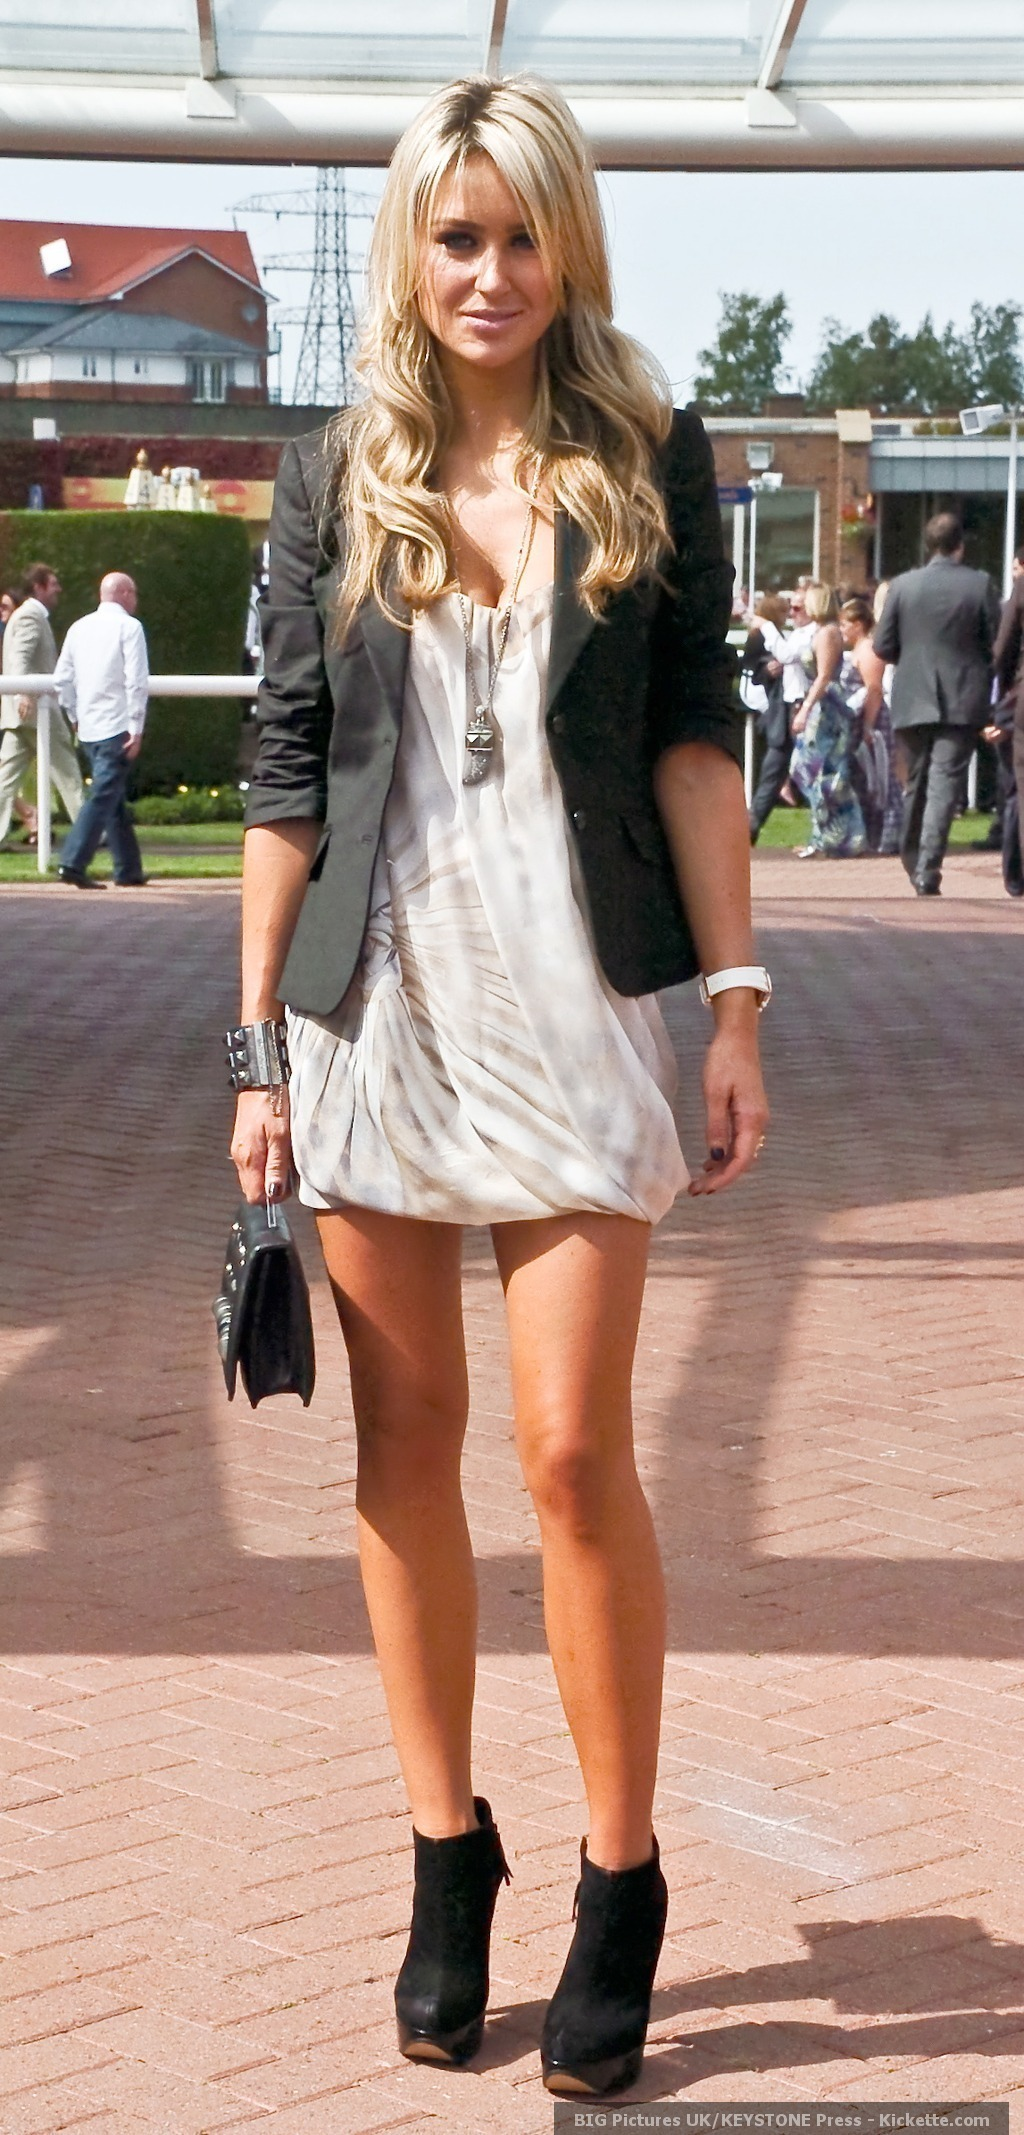 accessories, alex, alex curran, alex gerrard , beautiful